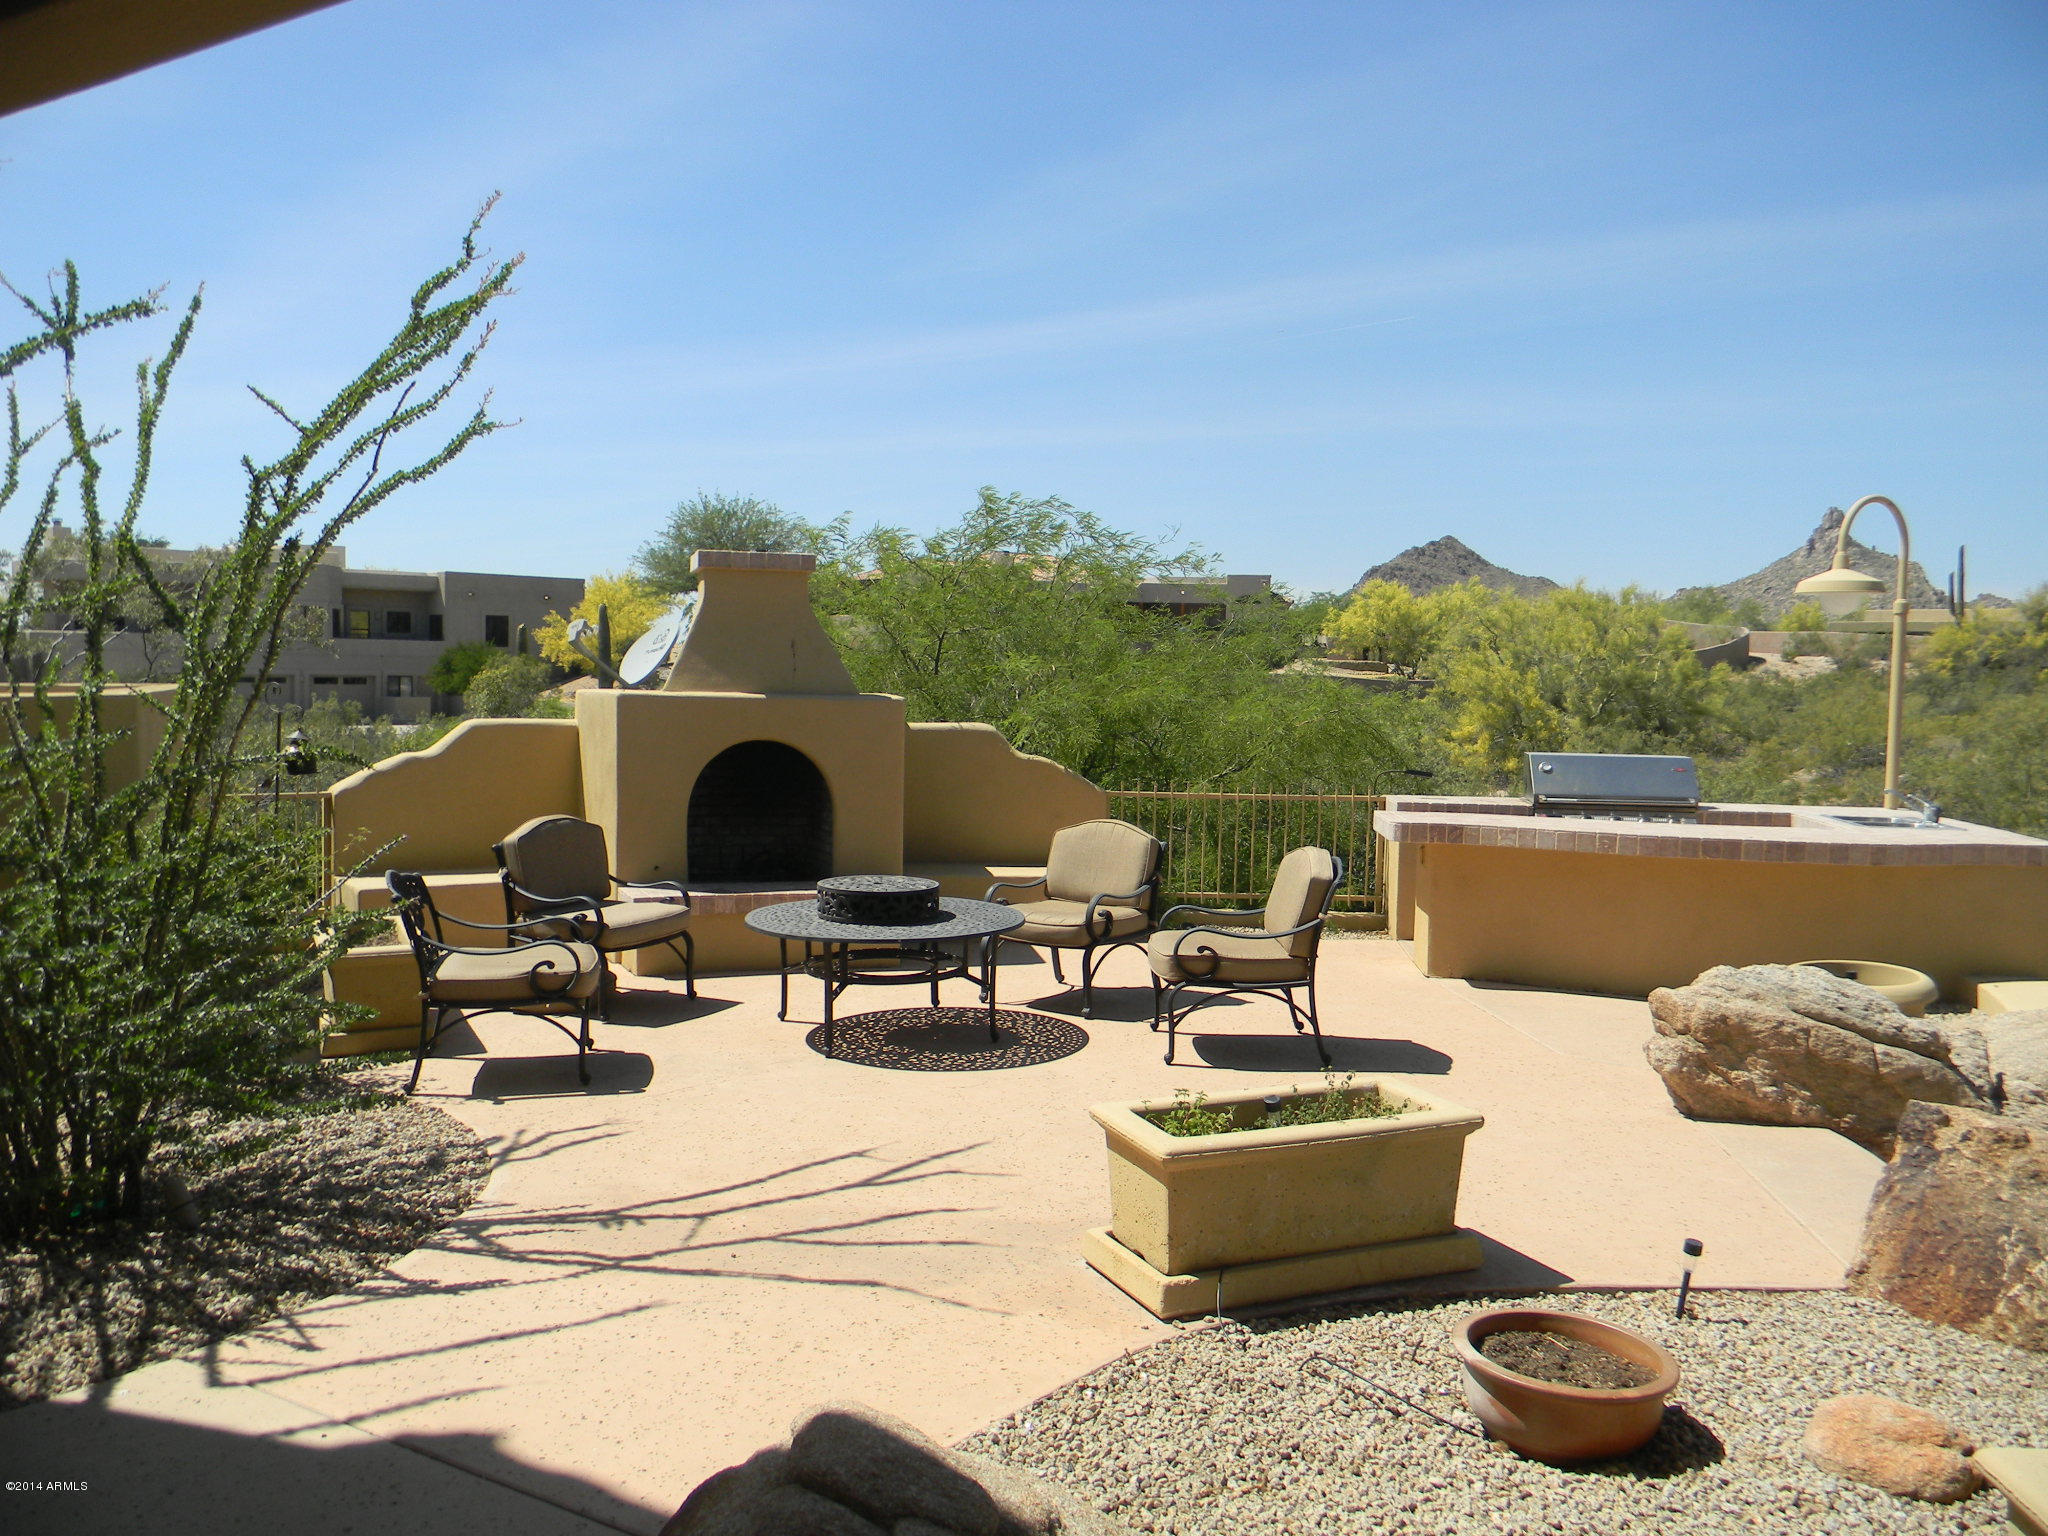 North Phoenix Area Expert Arizona Homes For Sale